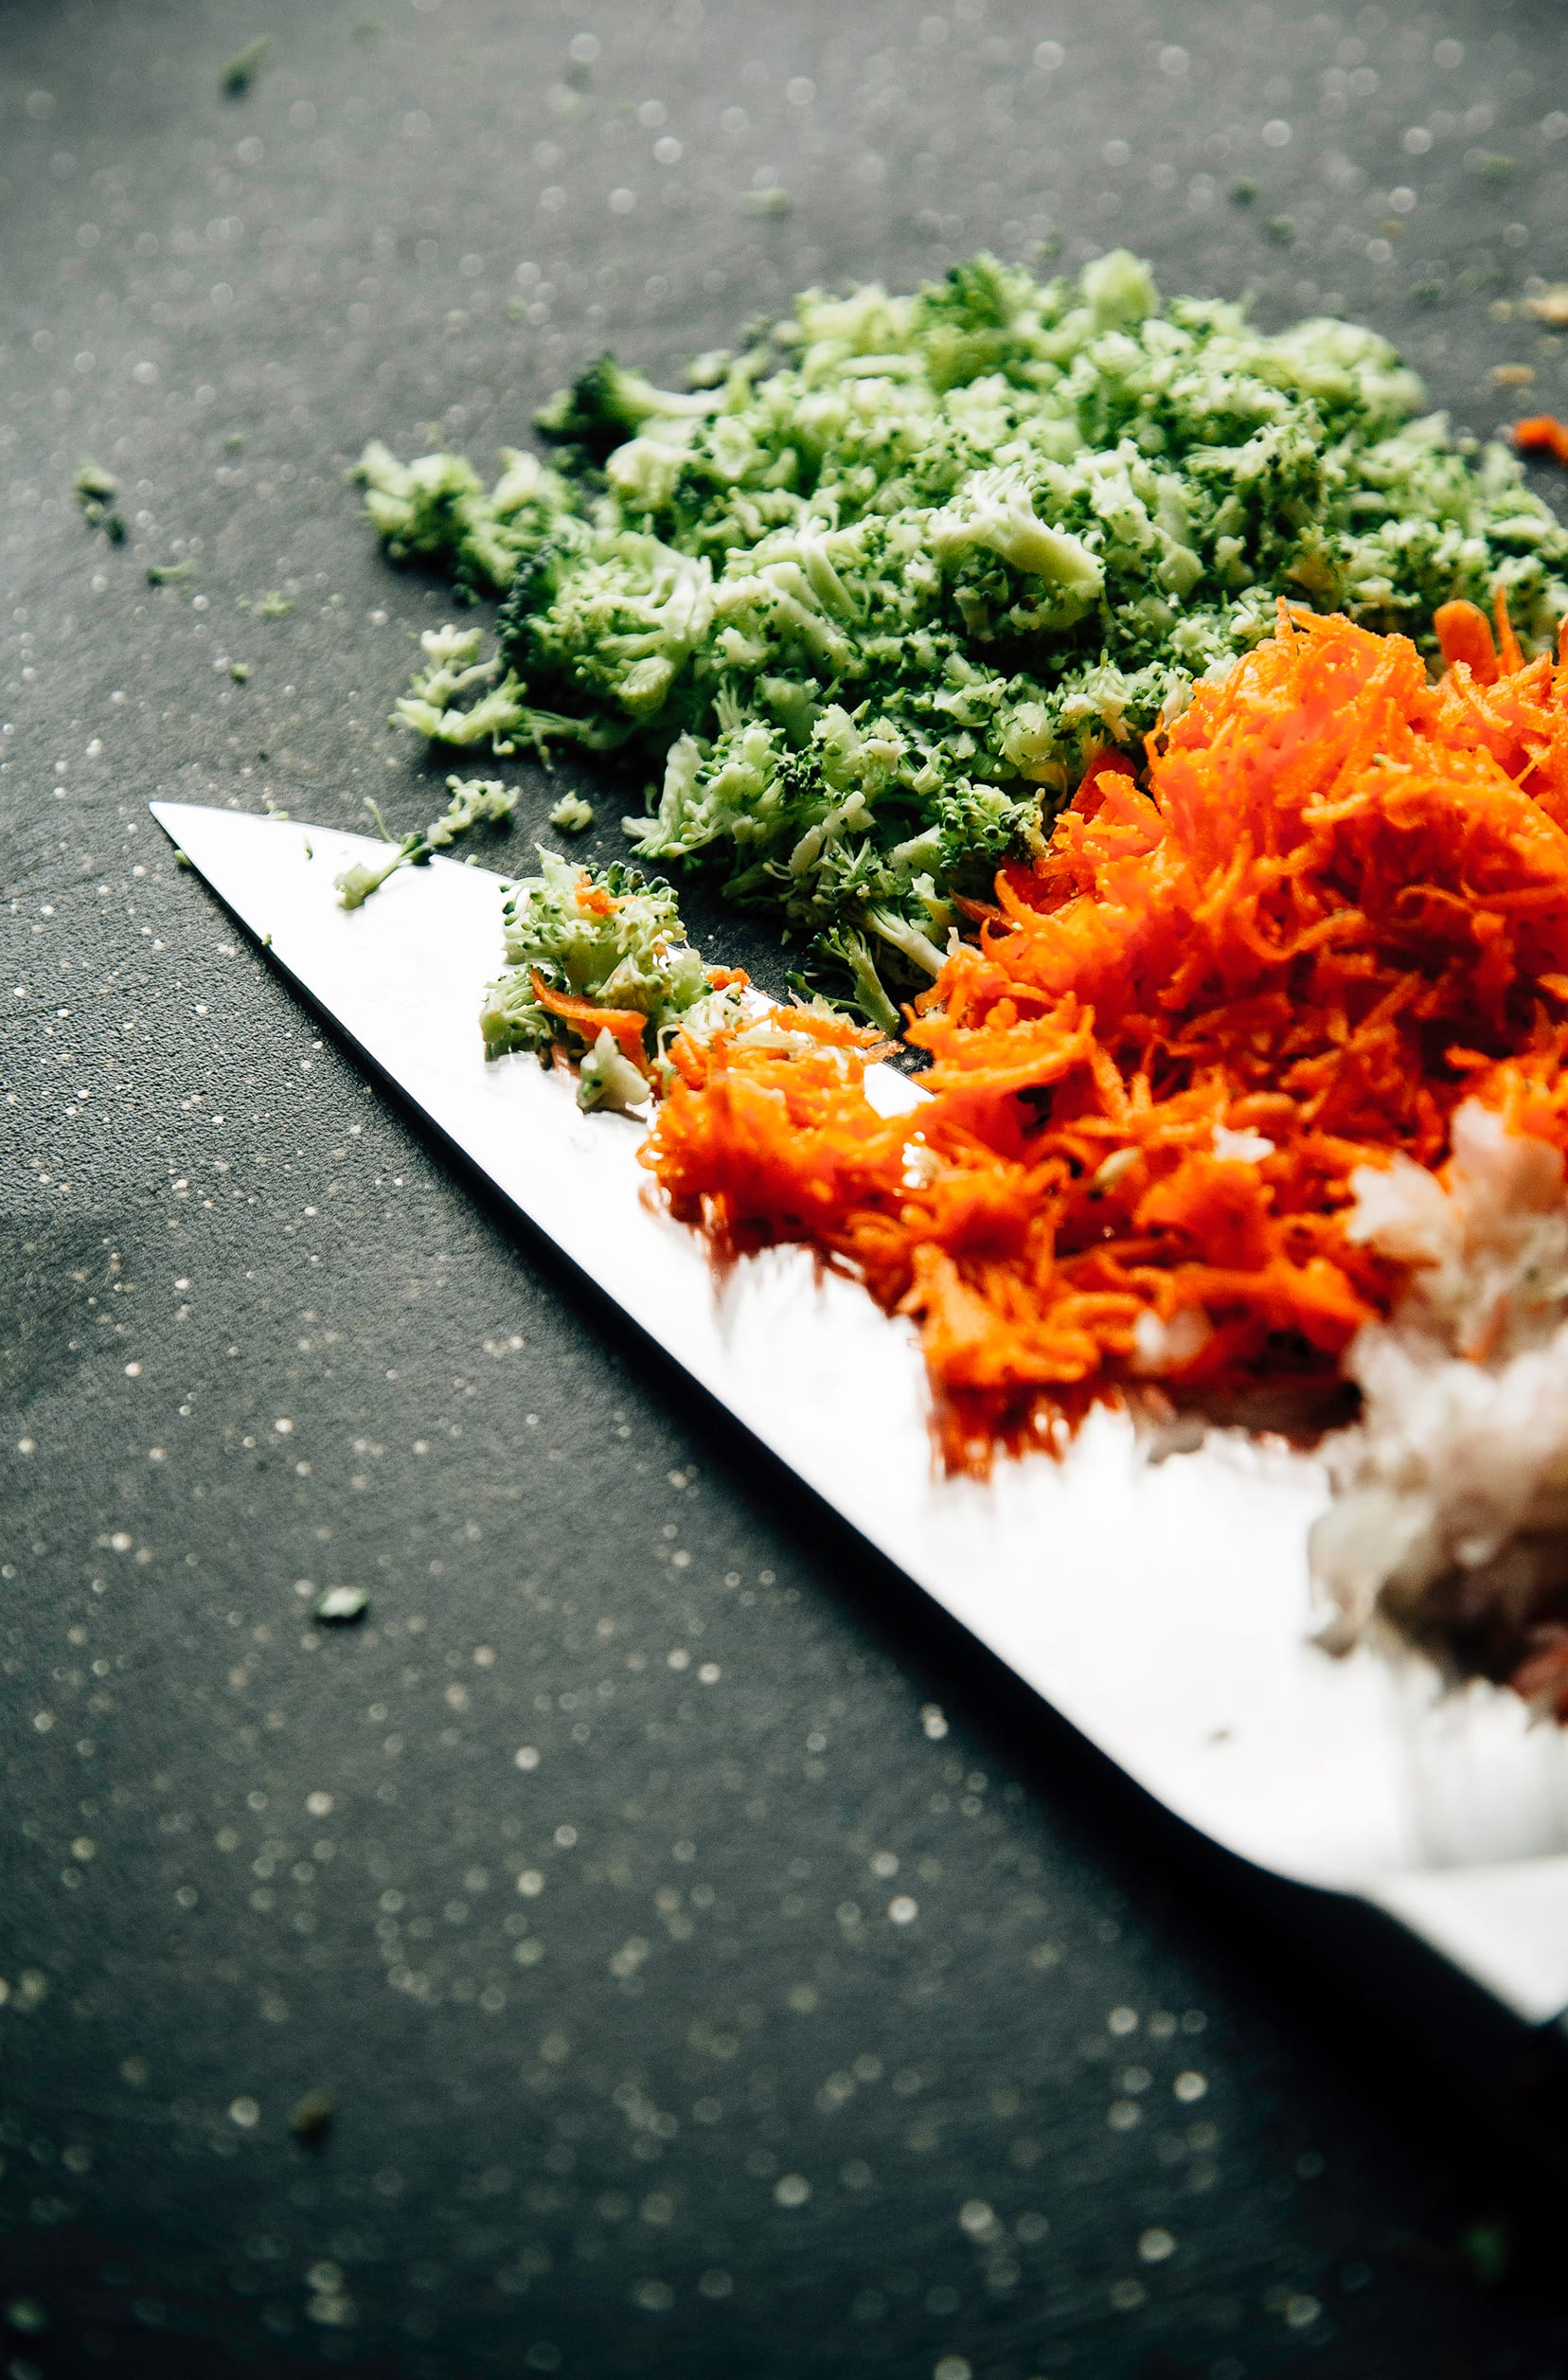 A 3/4 angle image of finely chopped carrots and broccoli.